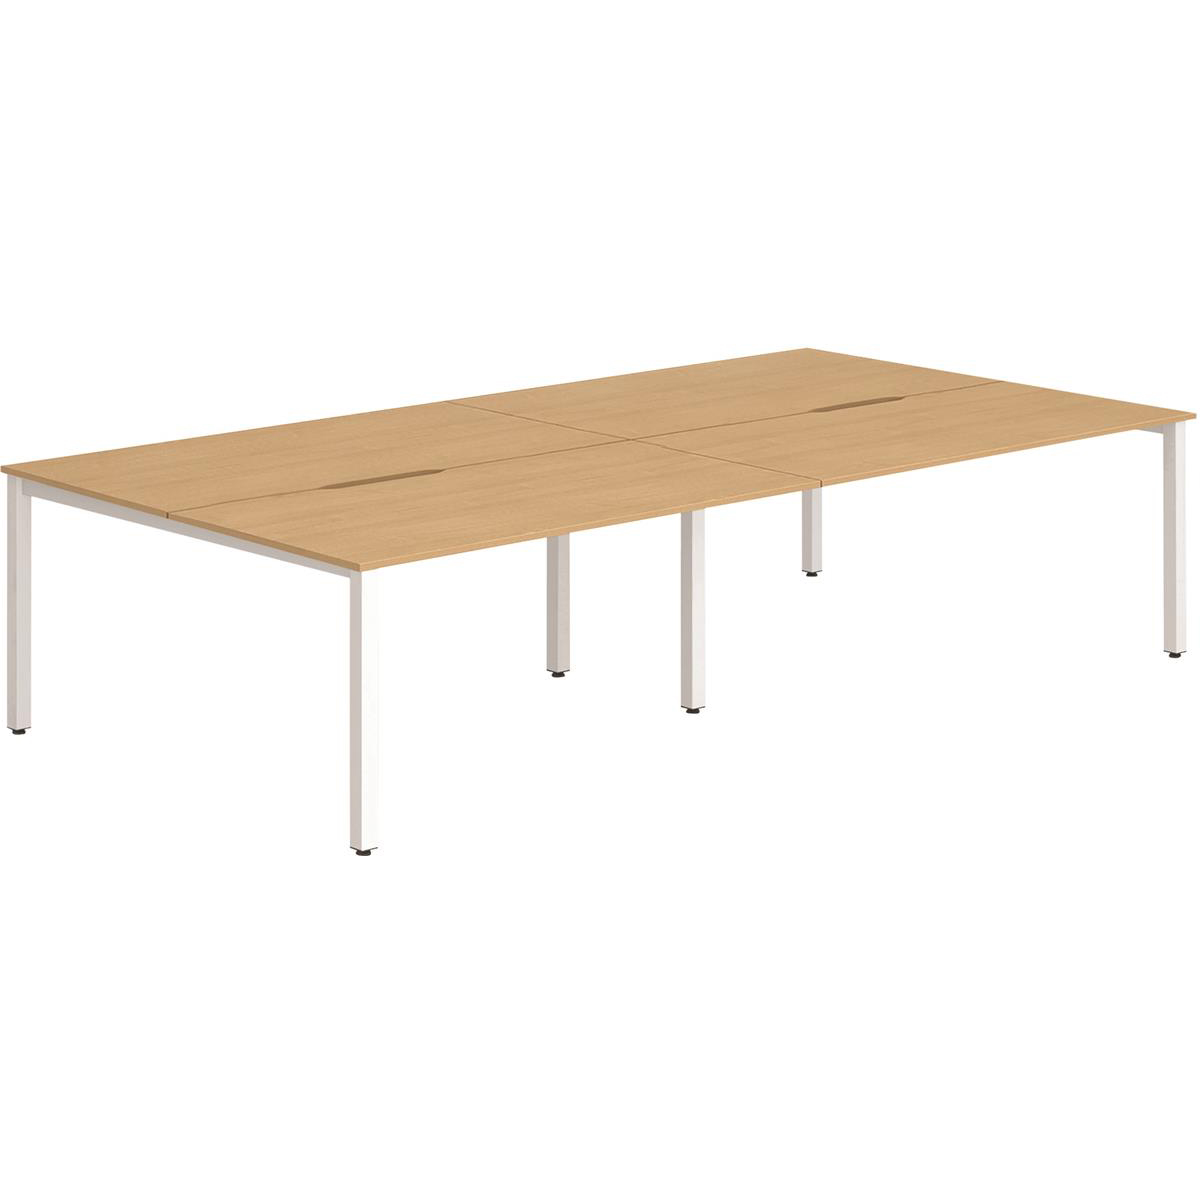 Trexus Bench Desk 4 Person Back to Back Configuration White Leg 2800x1600mm Beech Ref BE237